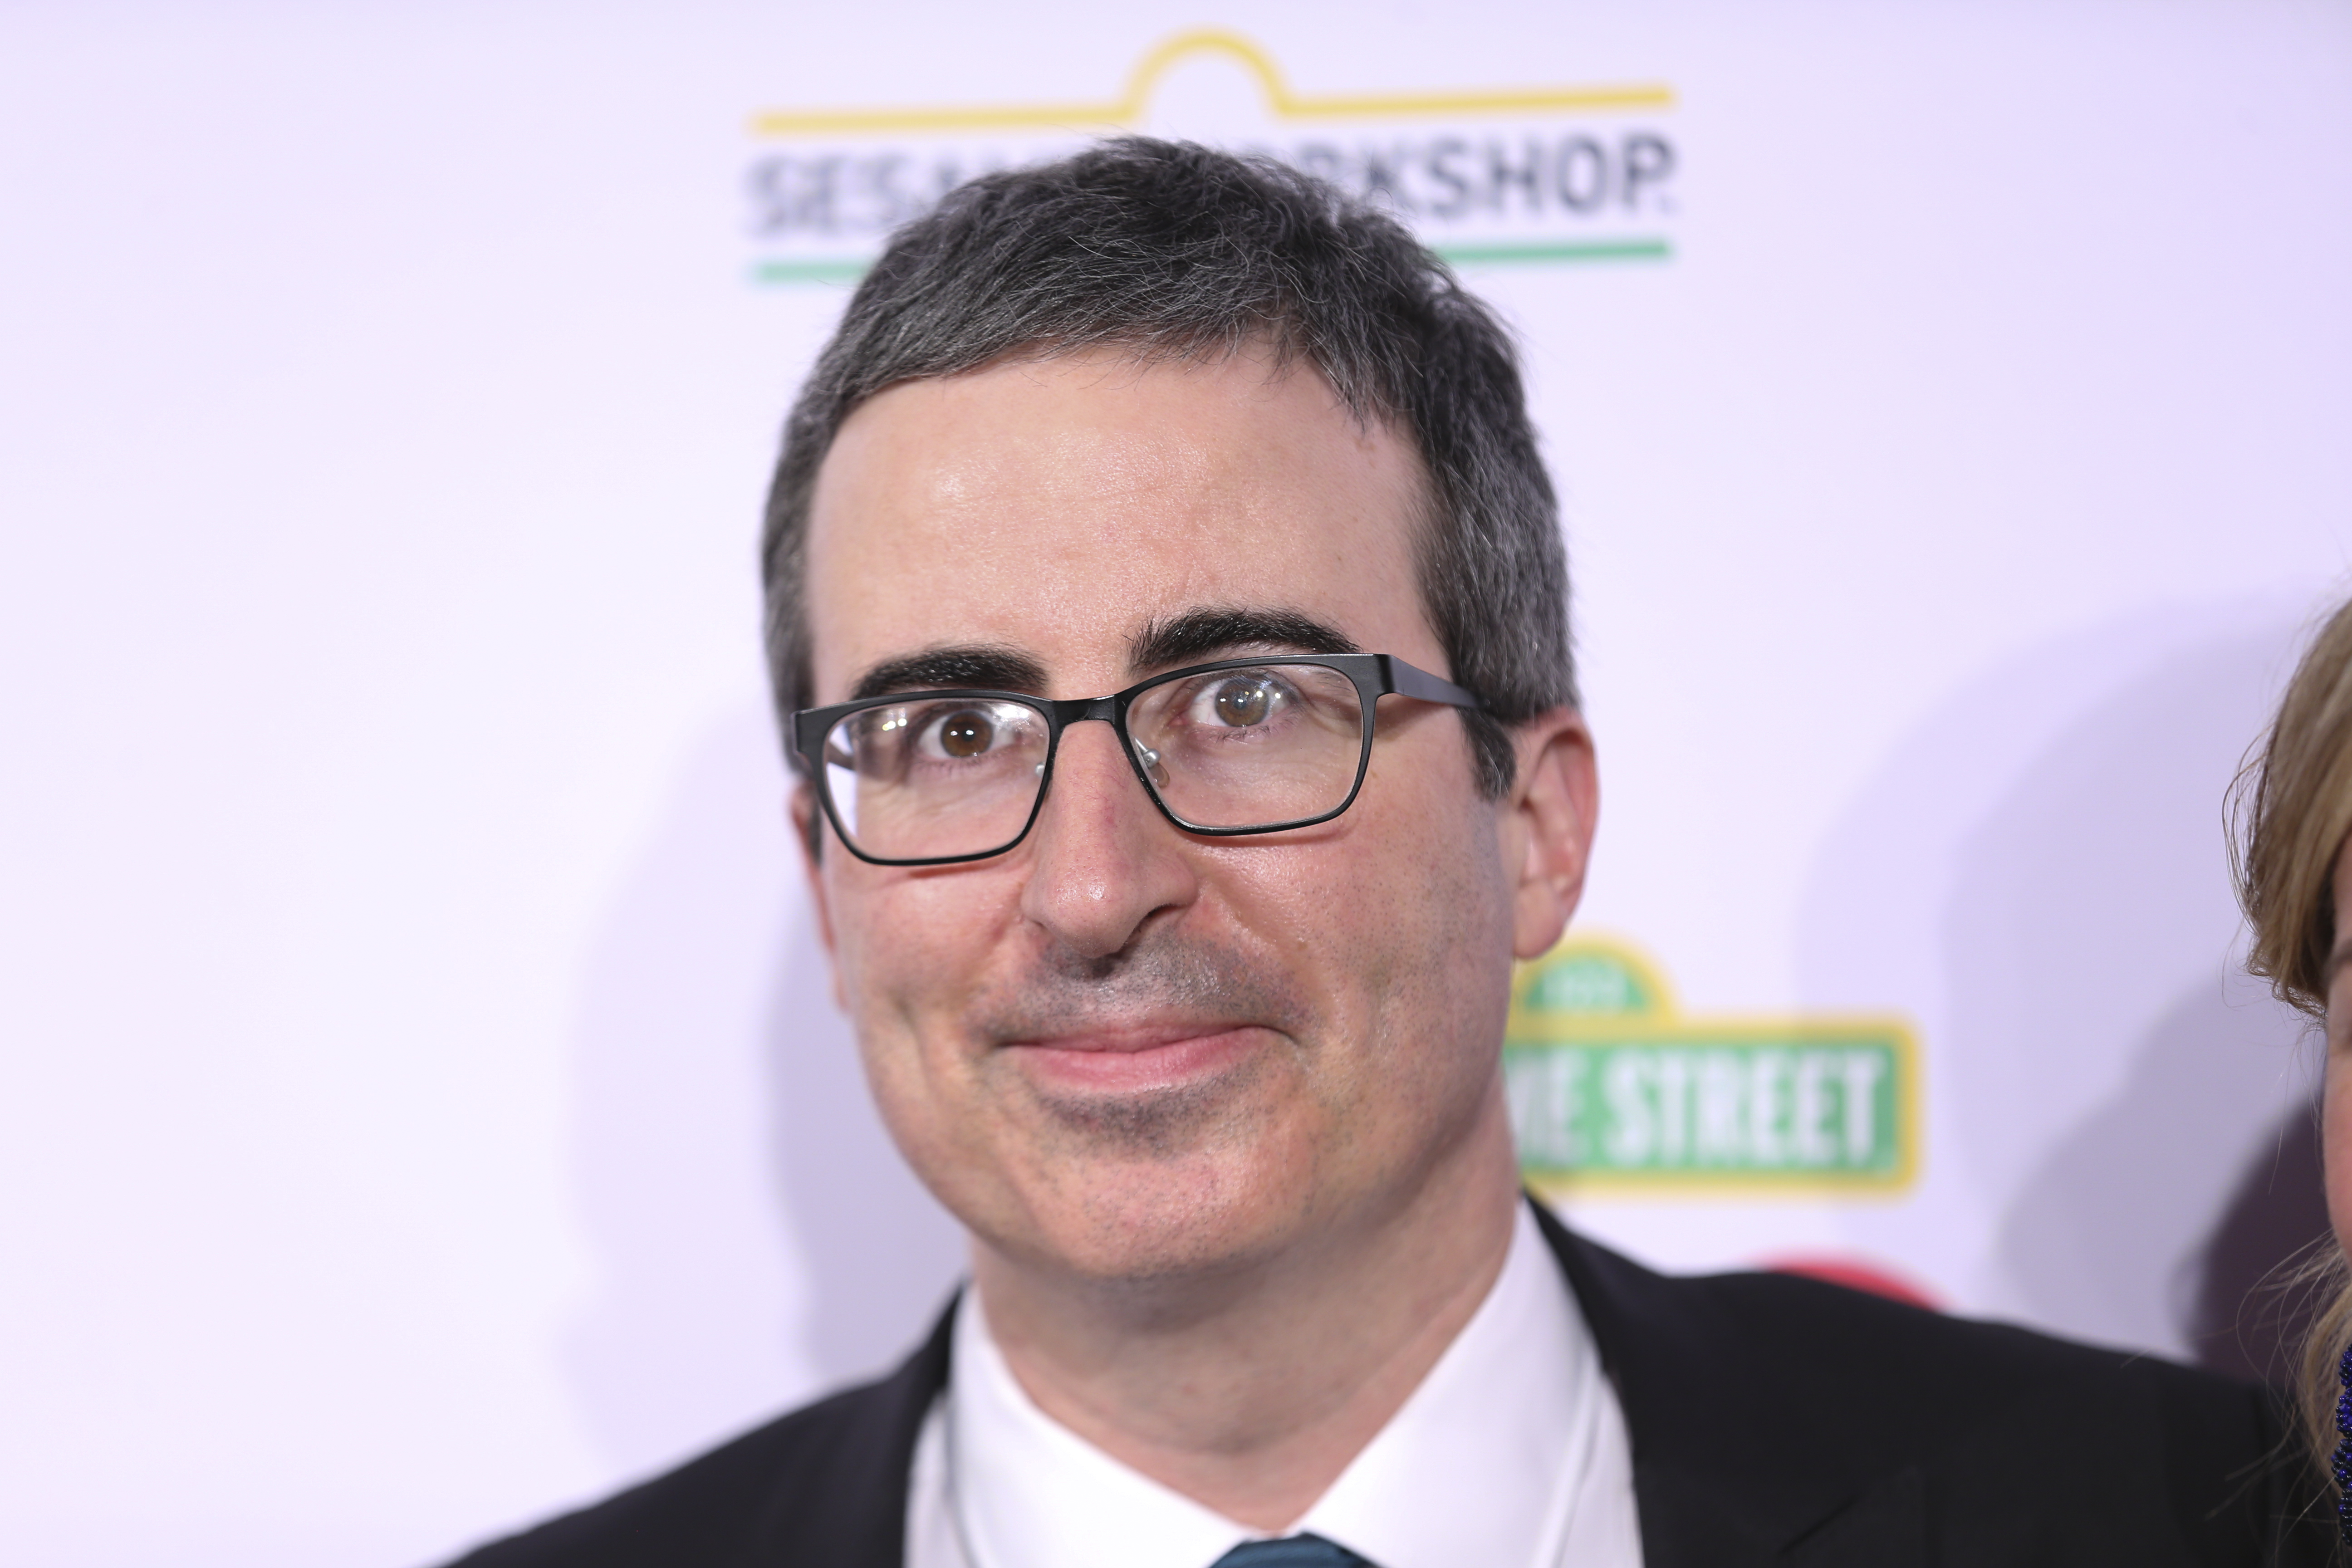 John Oliver attends the Sesame Workshop's 50th Anniversary Benefit Gala at Cipriani Wall Street on May 29, 2019 in New York City.